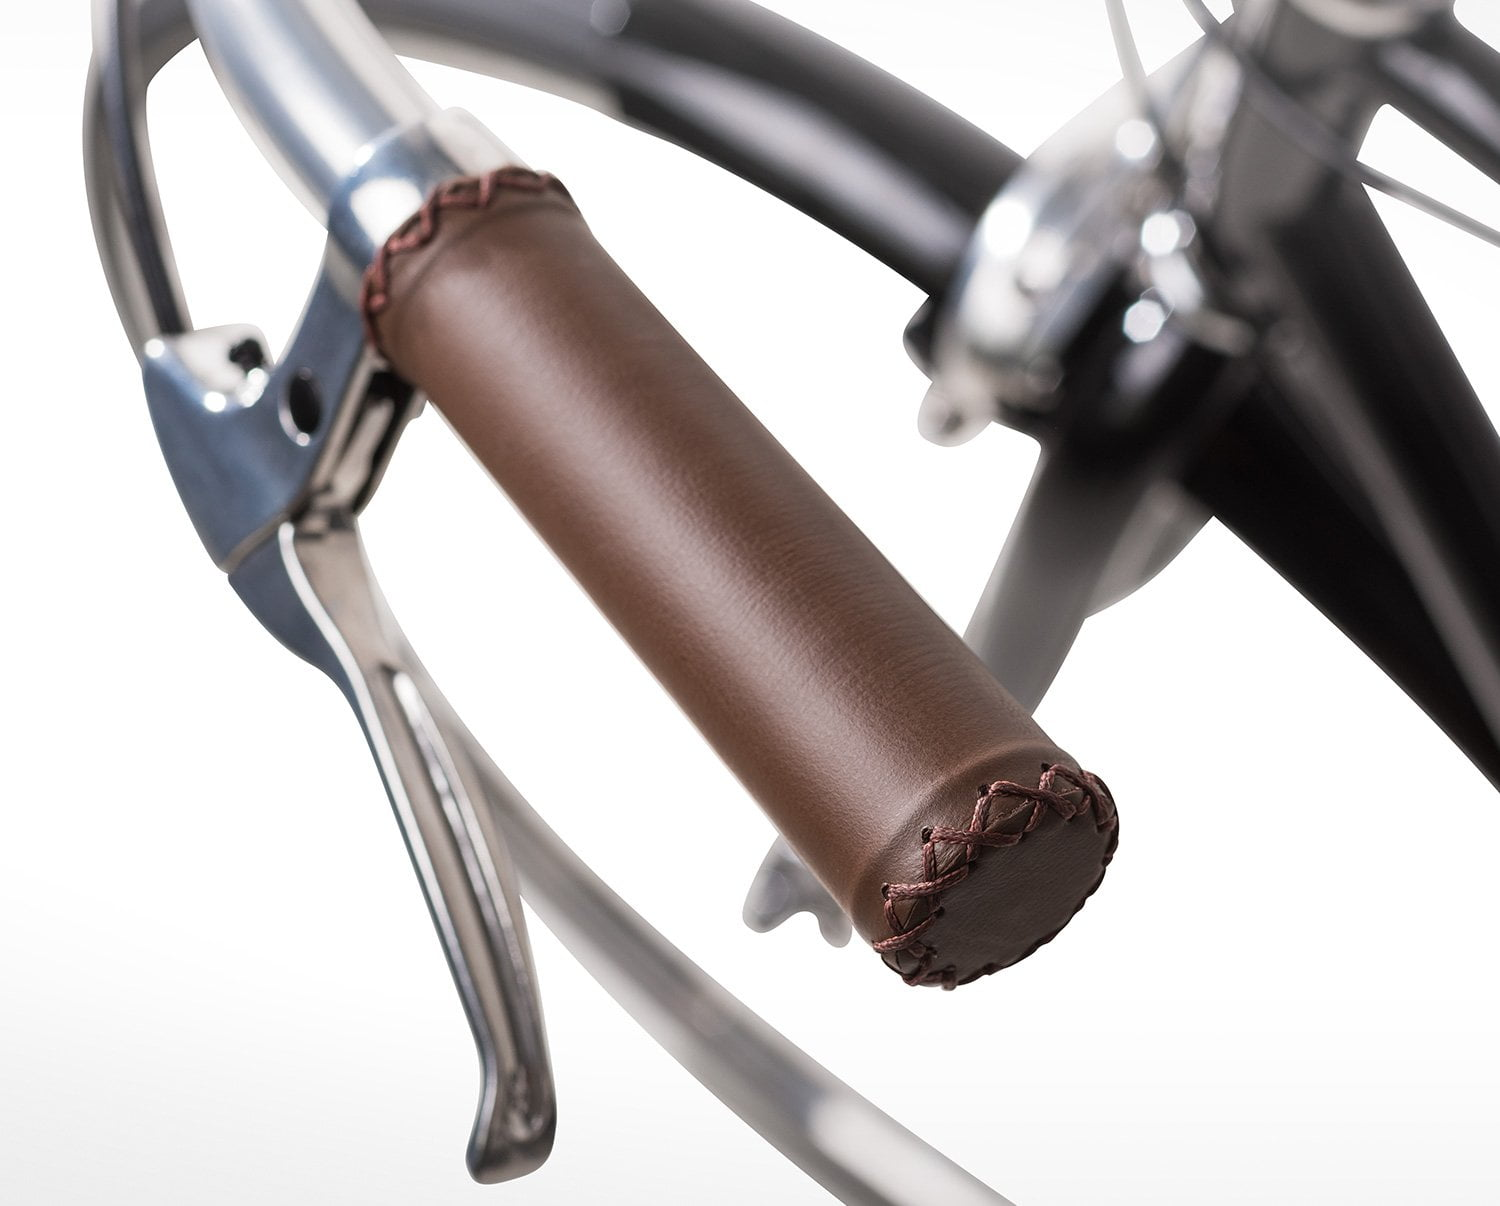 In The Details - Leather Wrapped Grips